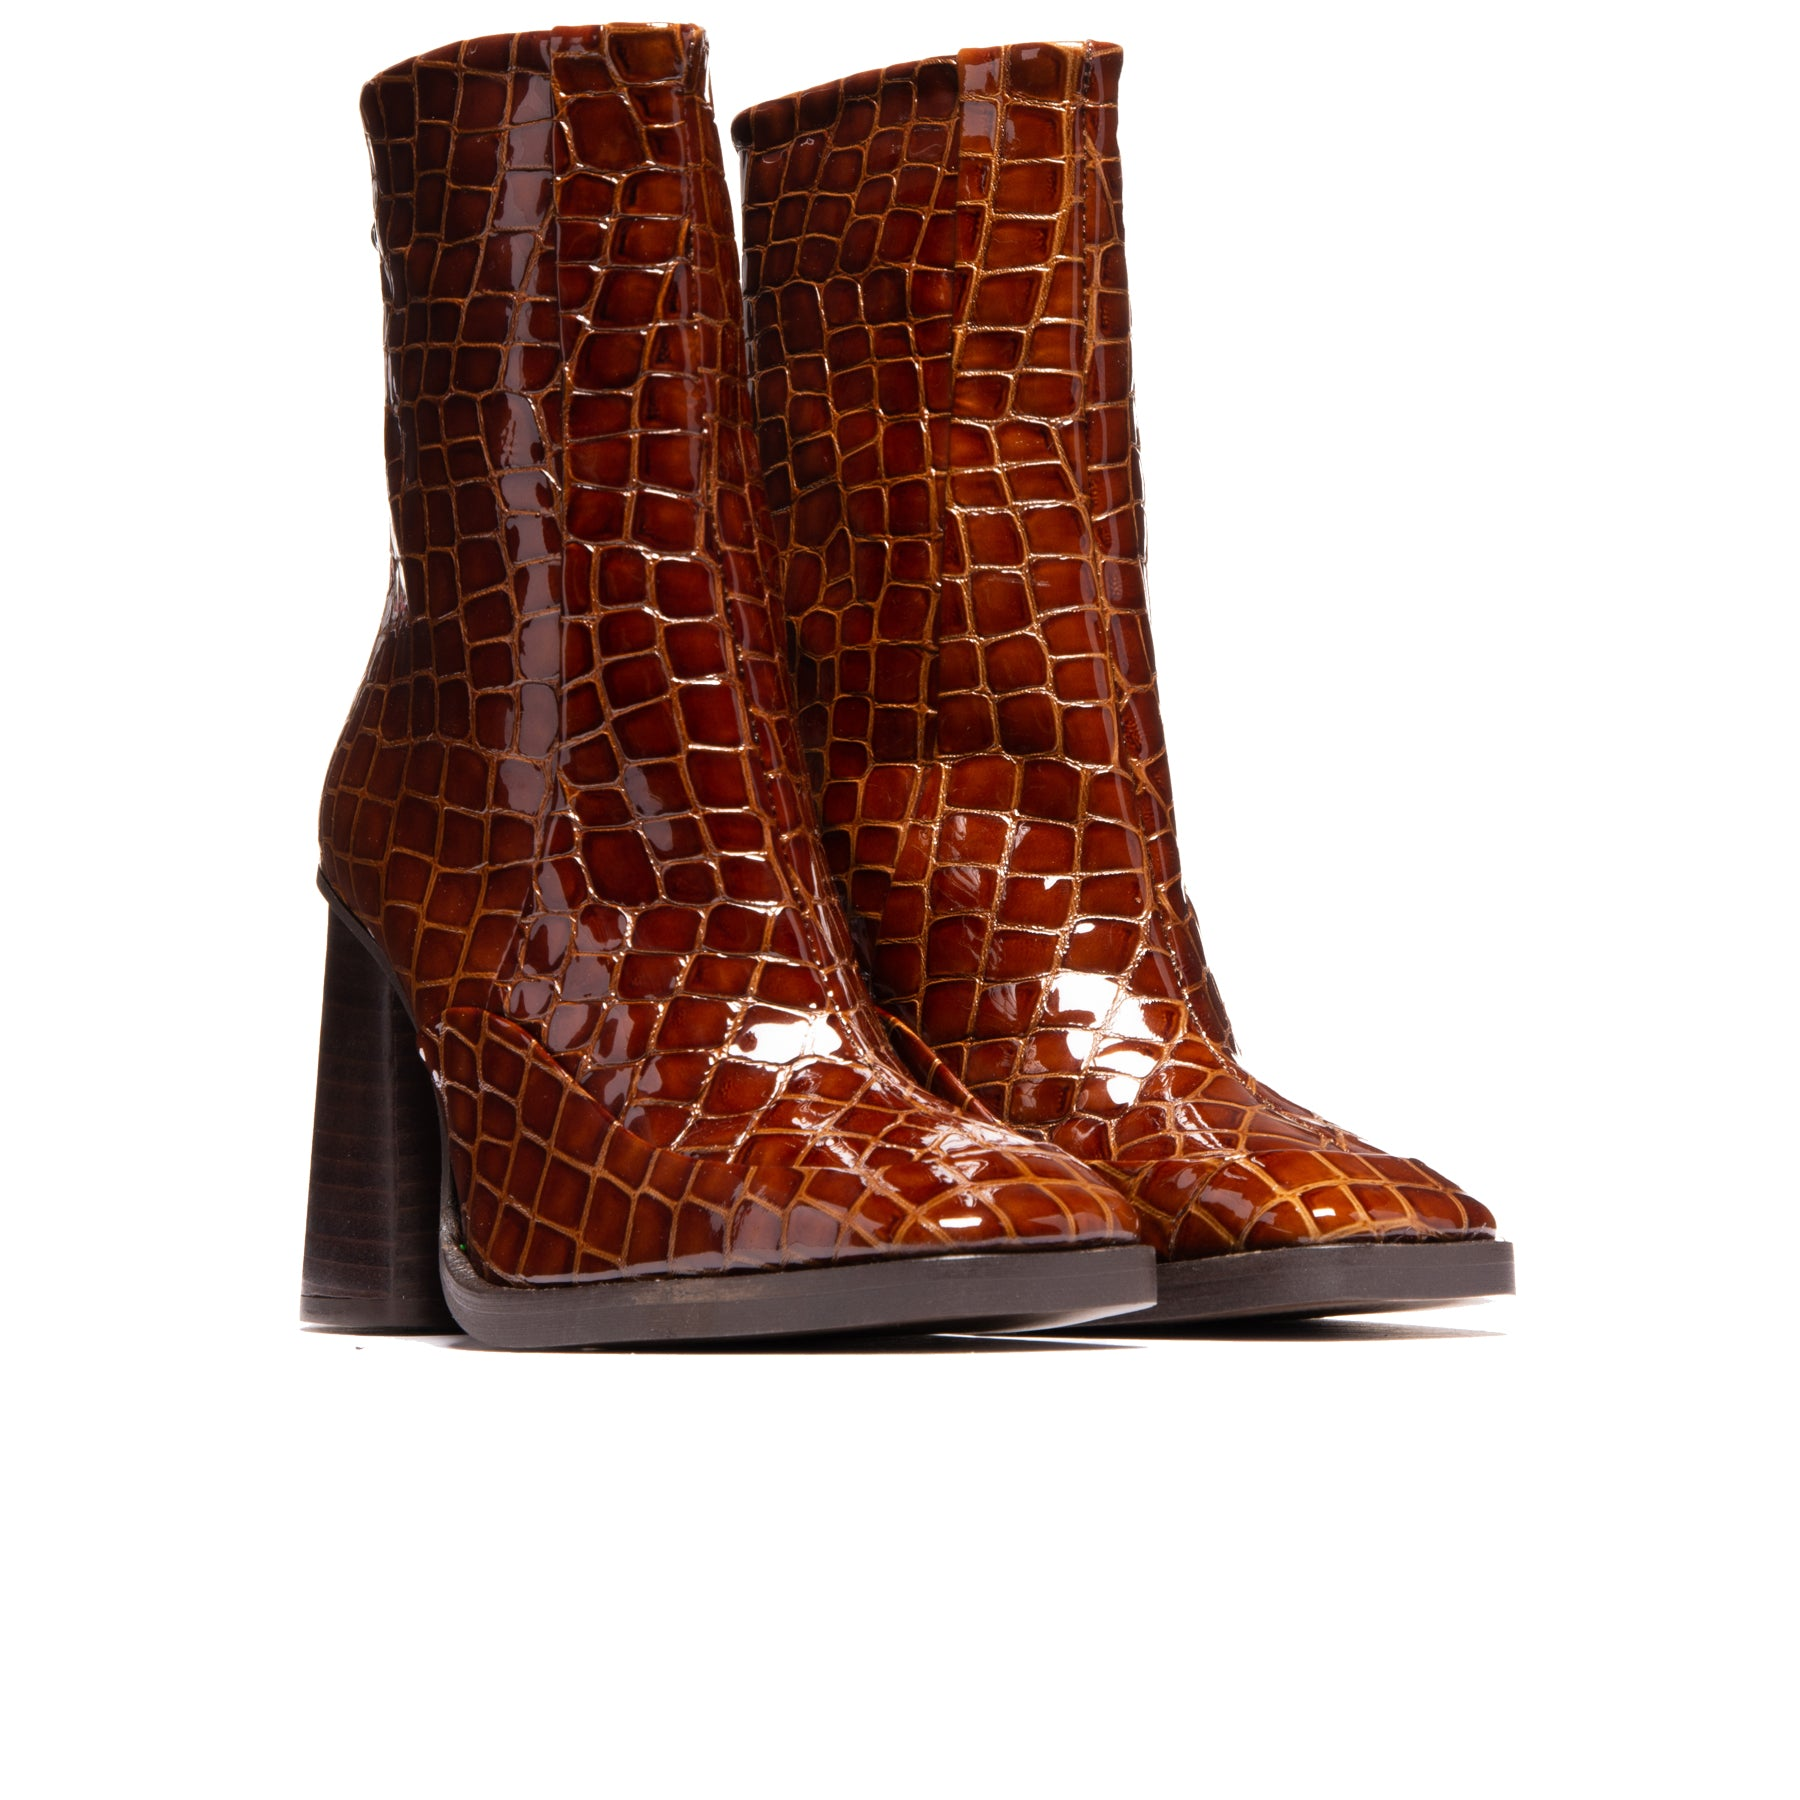 Kingsbury Tan Croco Leather